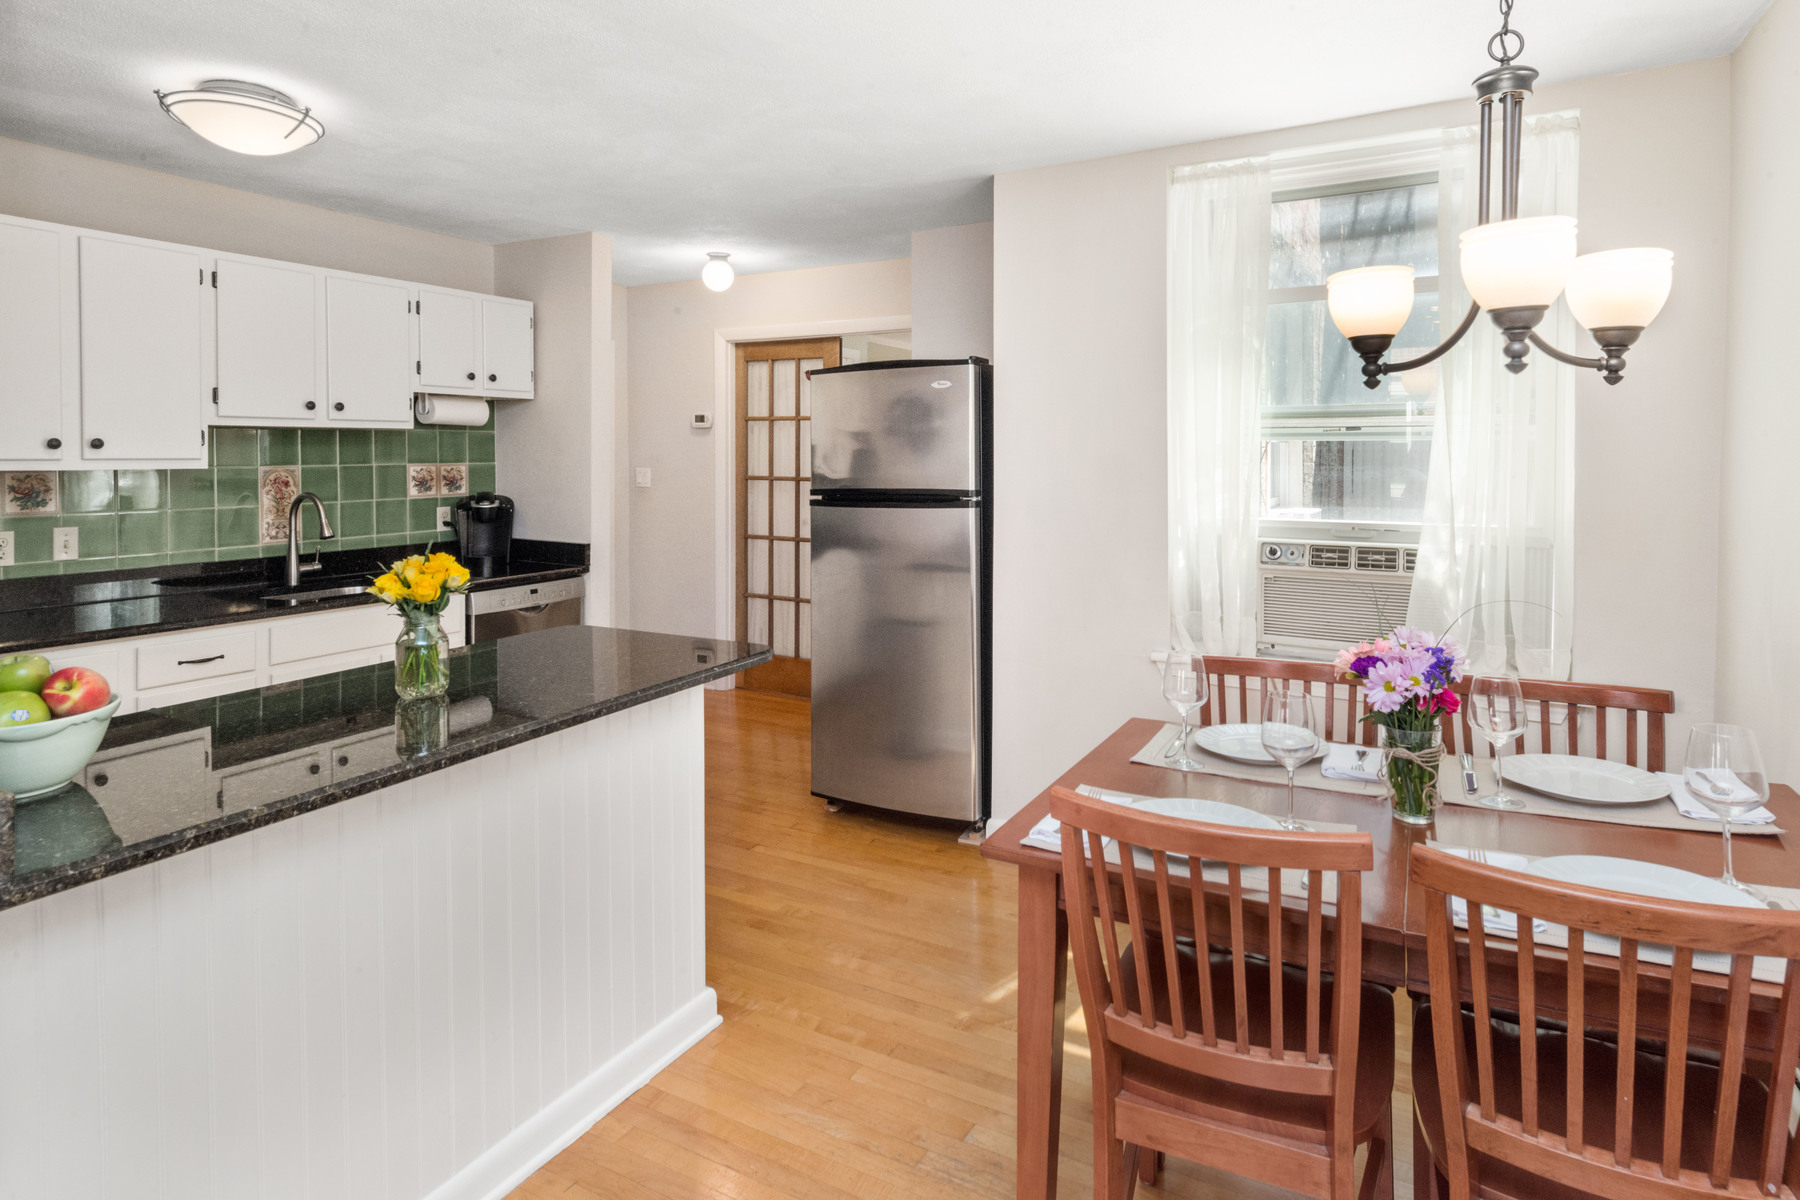 Condominium for Sale at Located On One Of The Nicest Streets In The Heart Of The North End 26 Sheafe Street Unit 1 Boston, Massachusetts 02113 United States